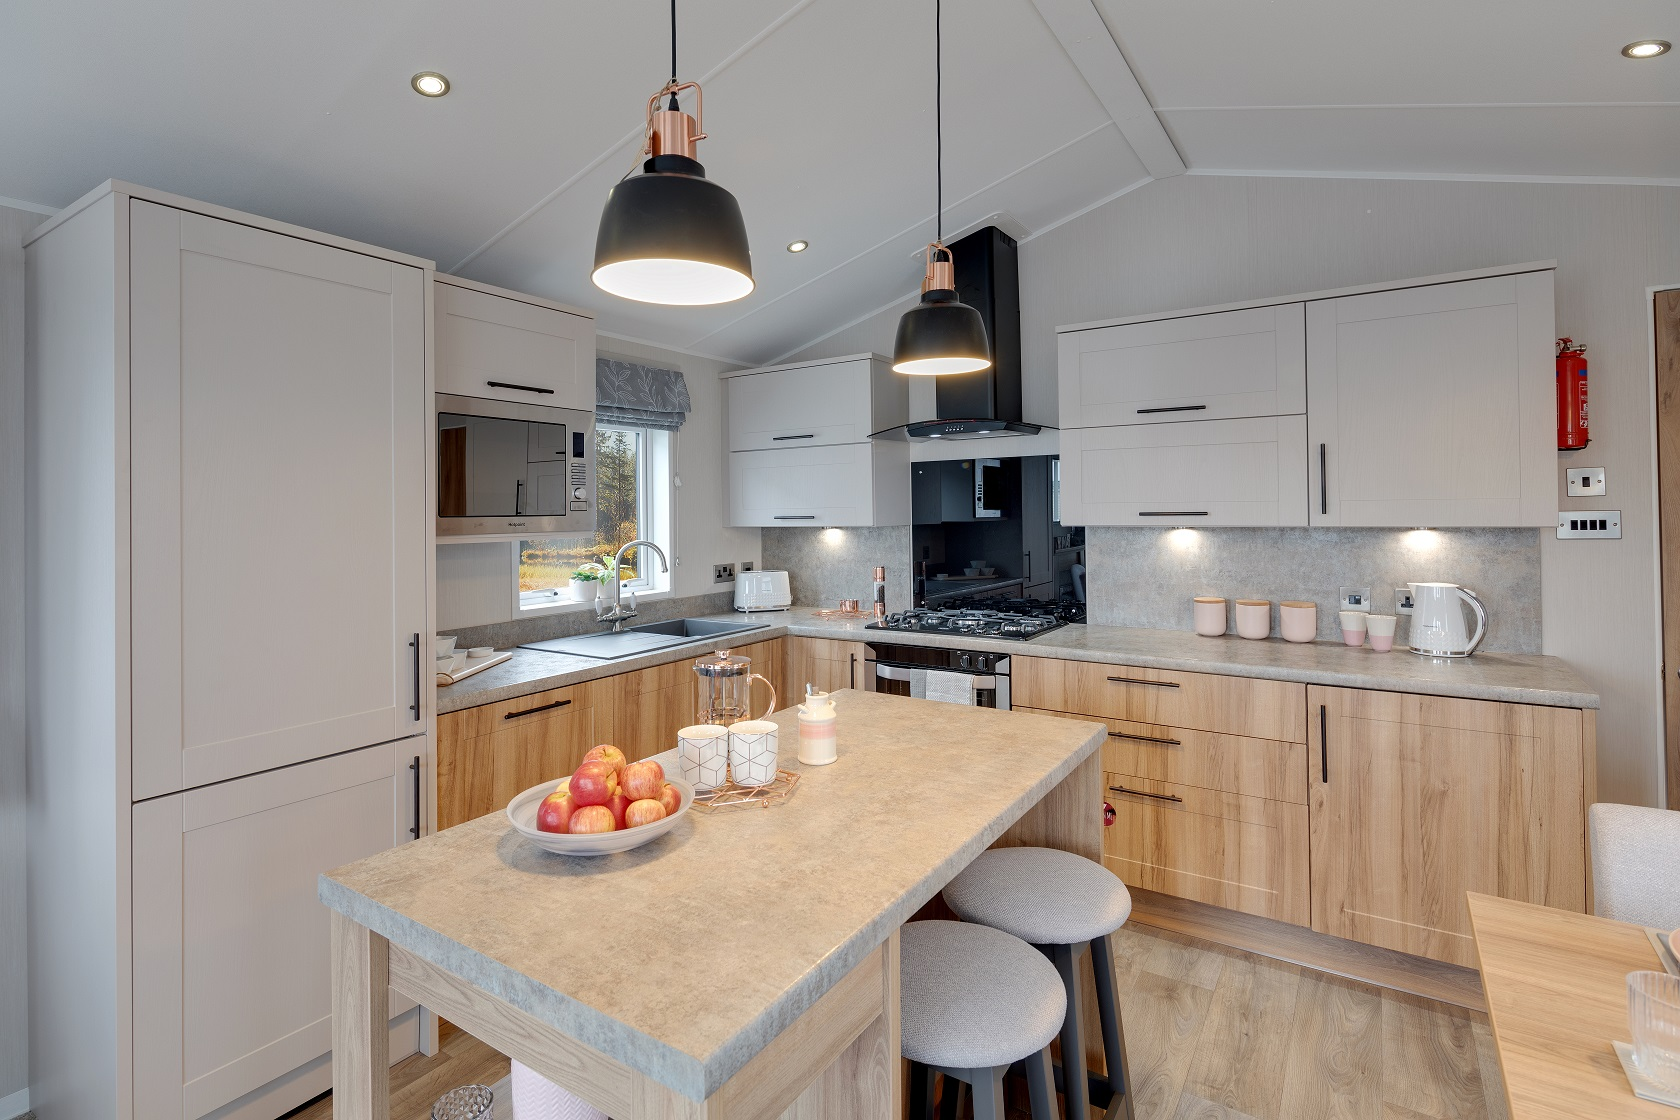 Willerby Waverley: New Static Caravans and Holiday Homes for Sale, Clifton, Morpeth Large Image 3